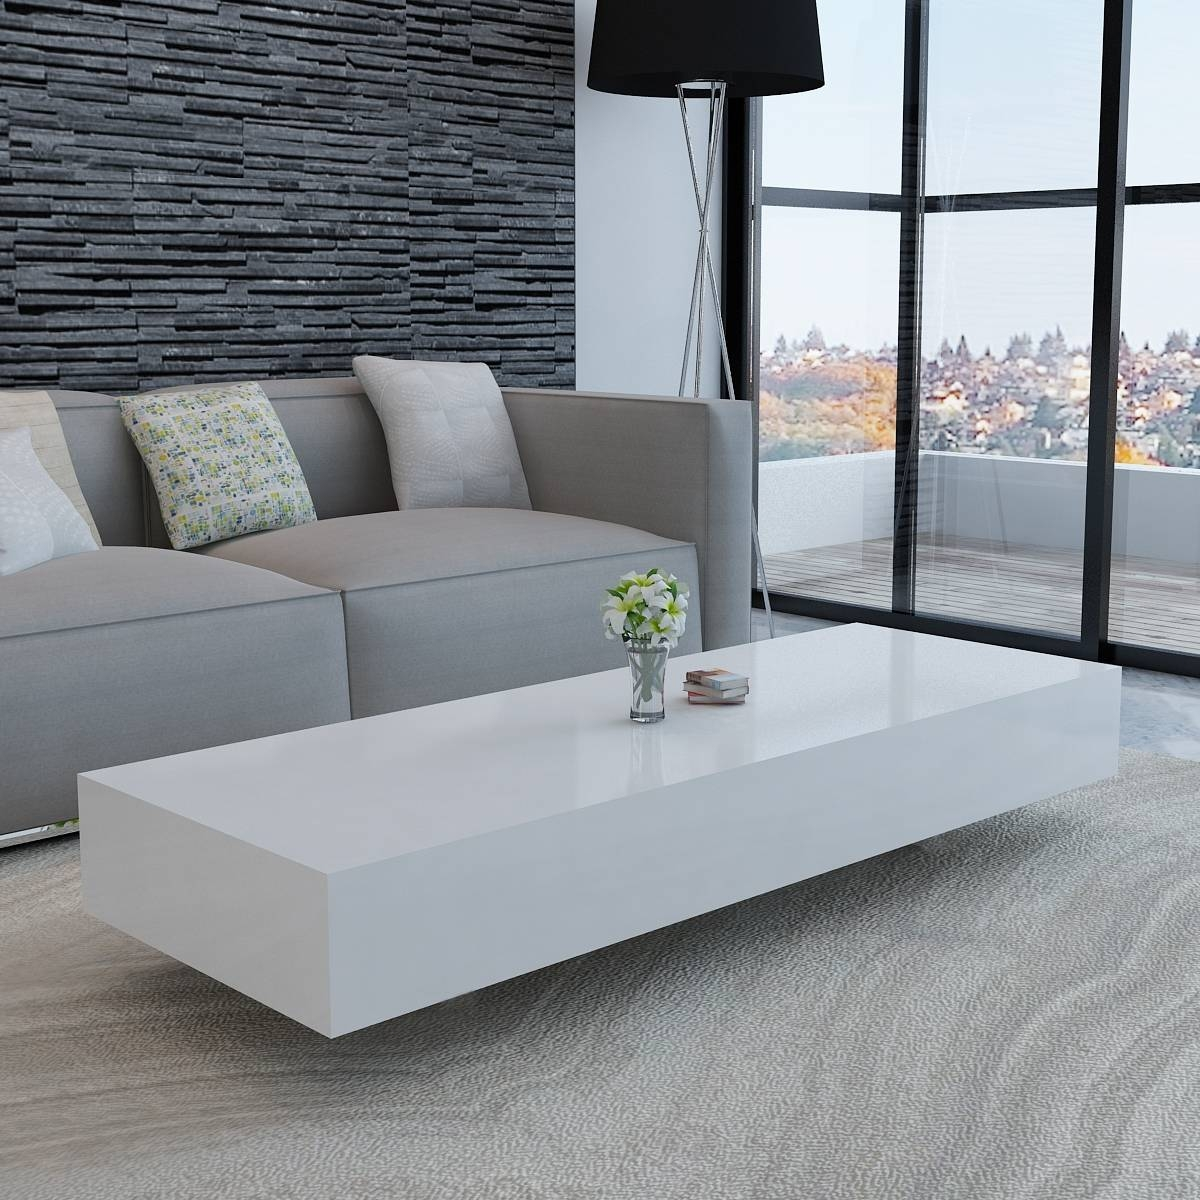 White Gloss Coffee Table Ikea To Decorate A Living Room intended for White Gloss Coffee Tables (Image 26 of 30)